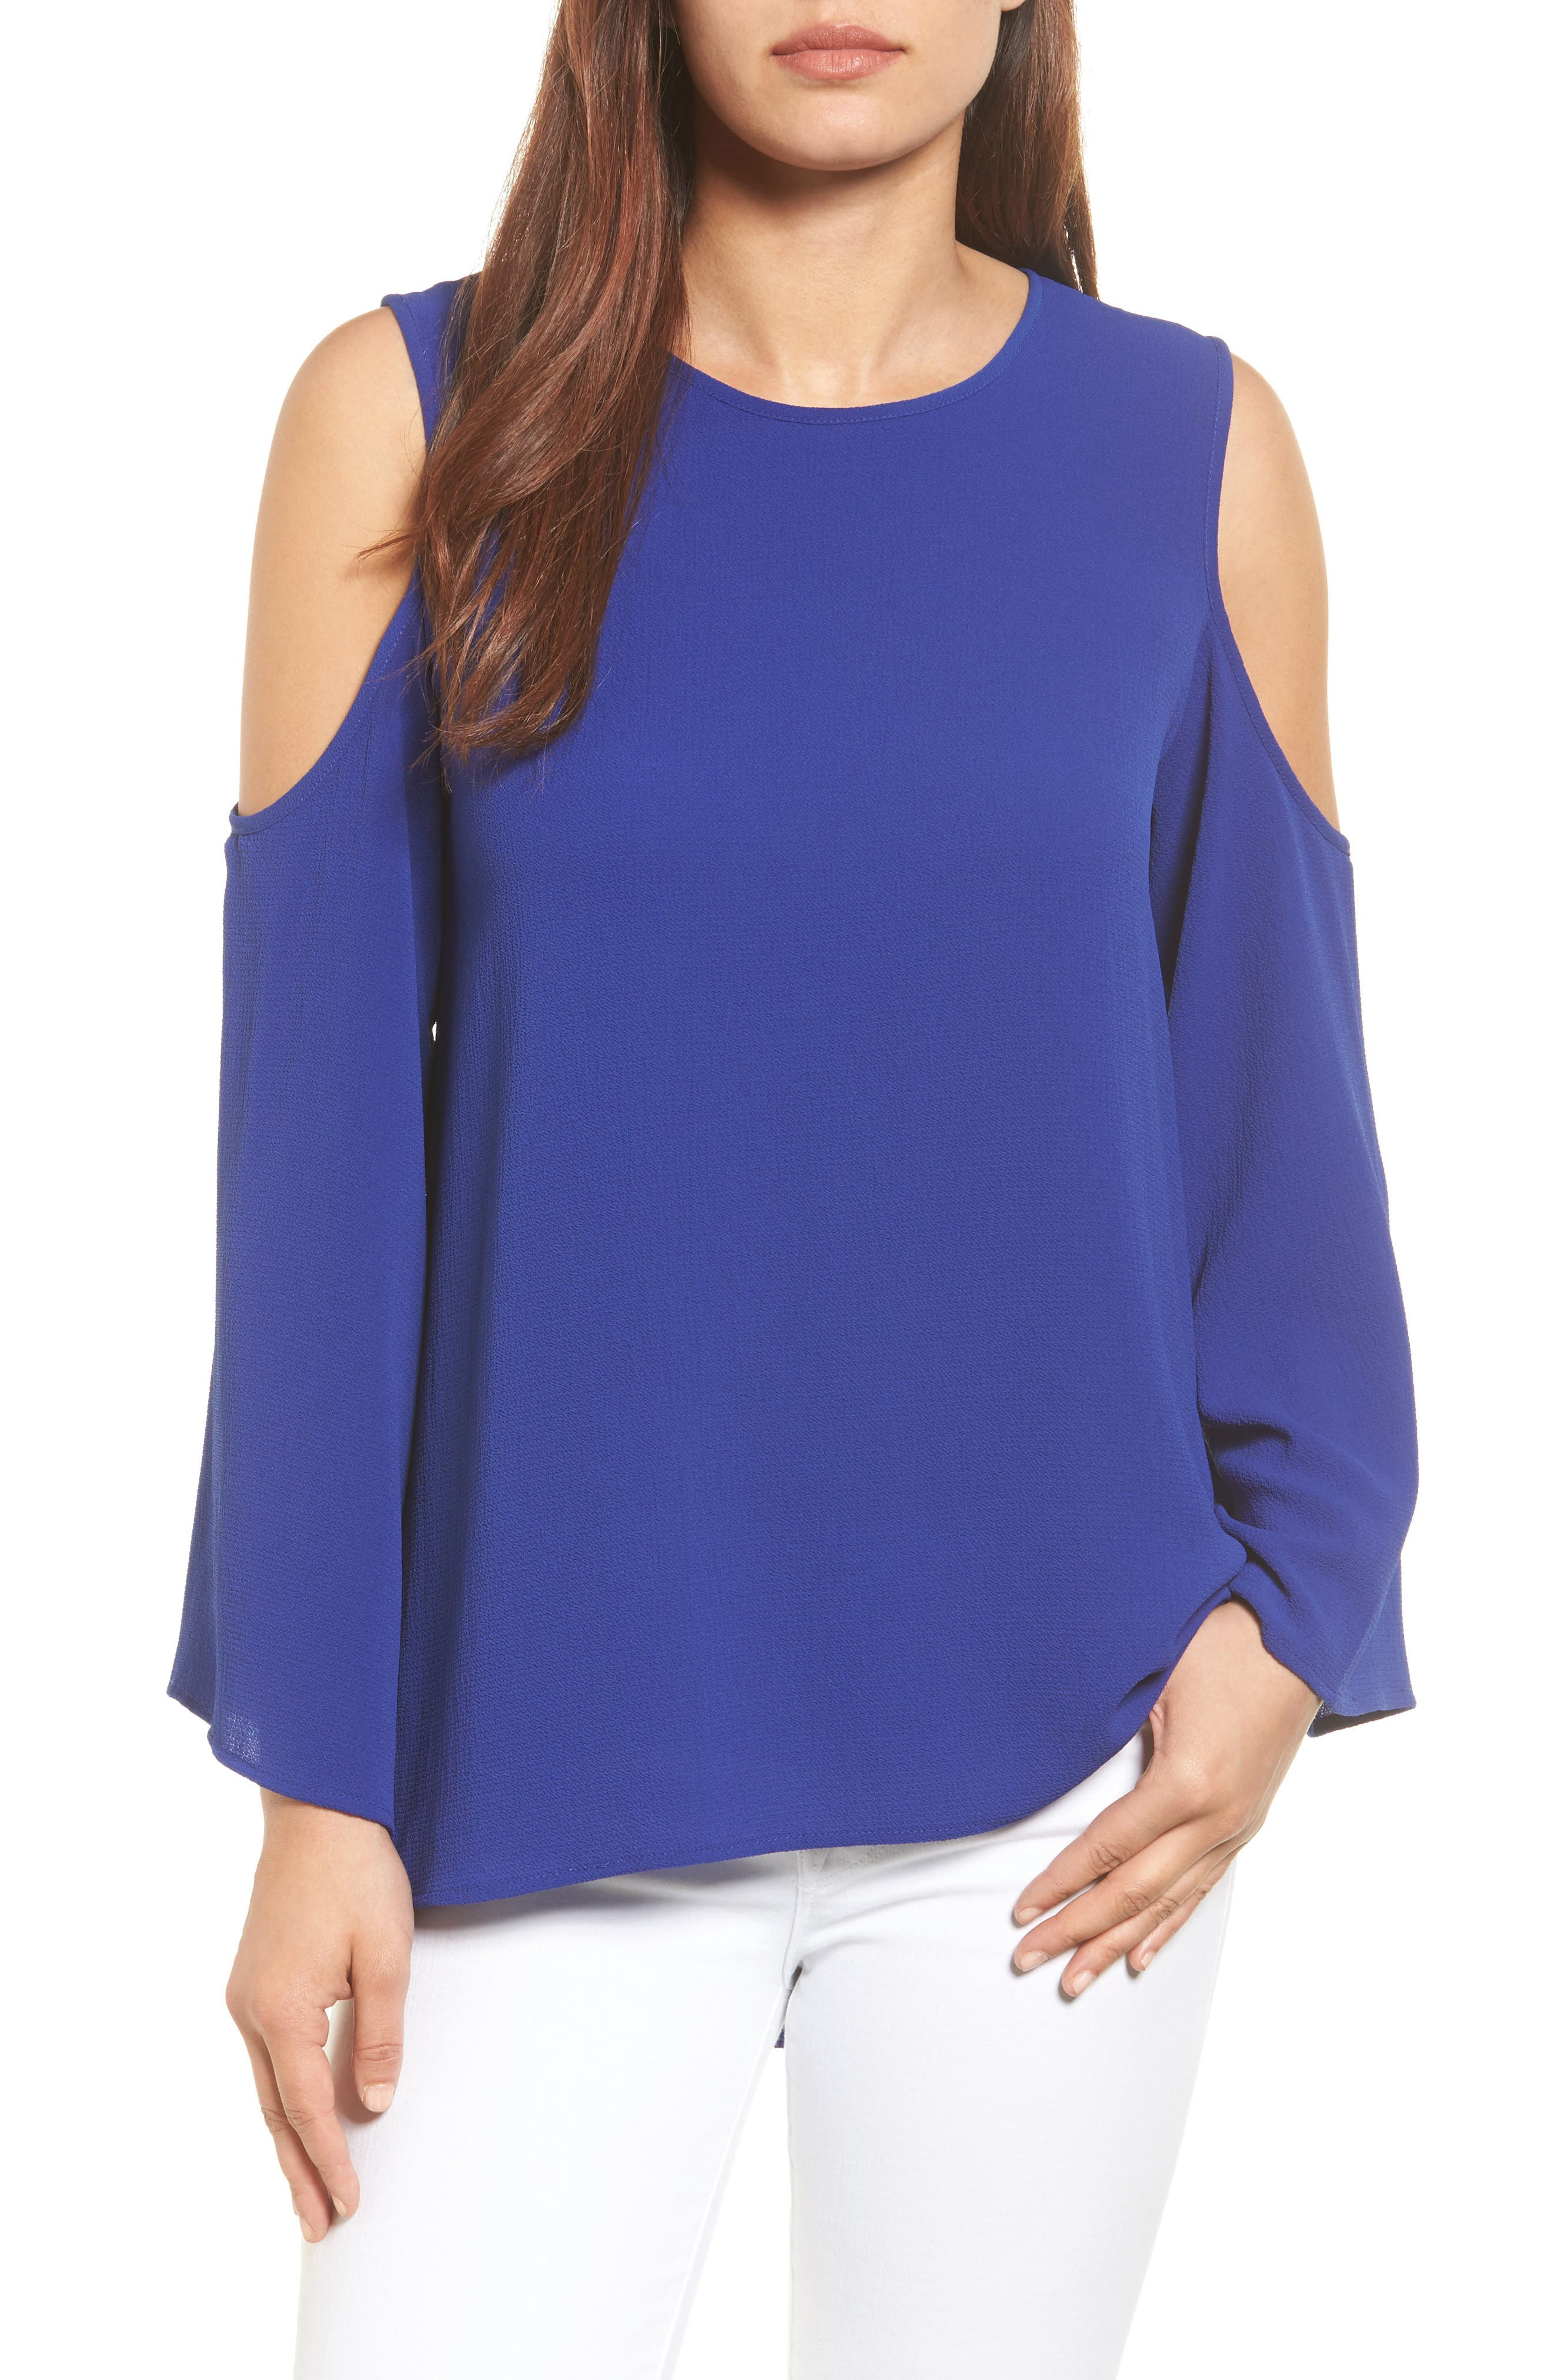 Vince Camuto Cold Shoulder Blouse (Regular & Petite)